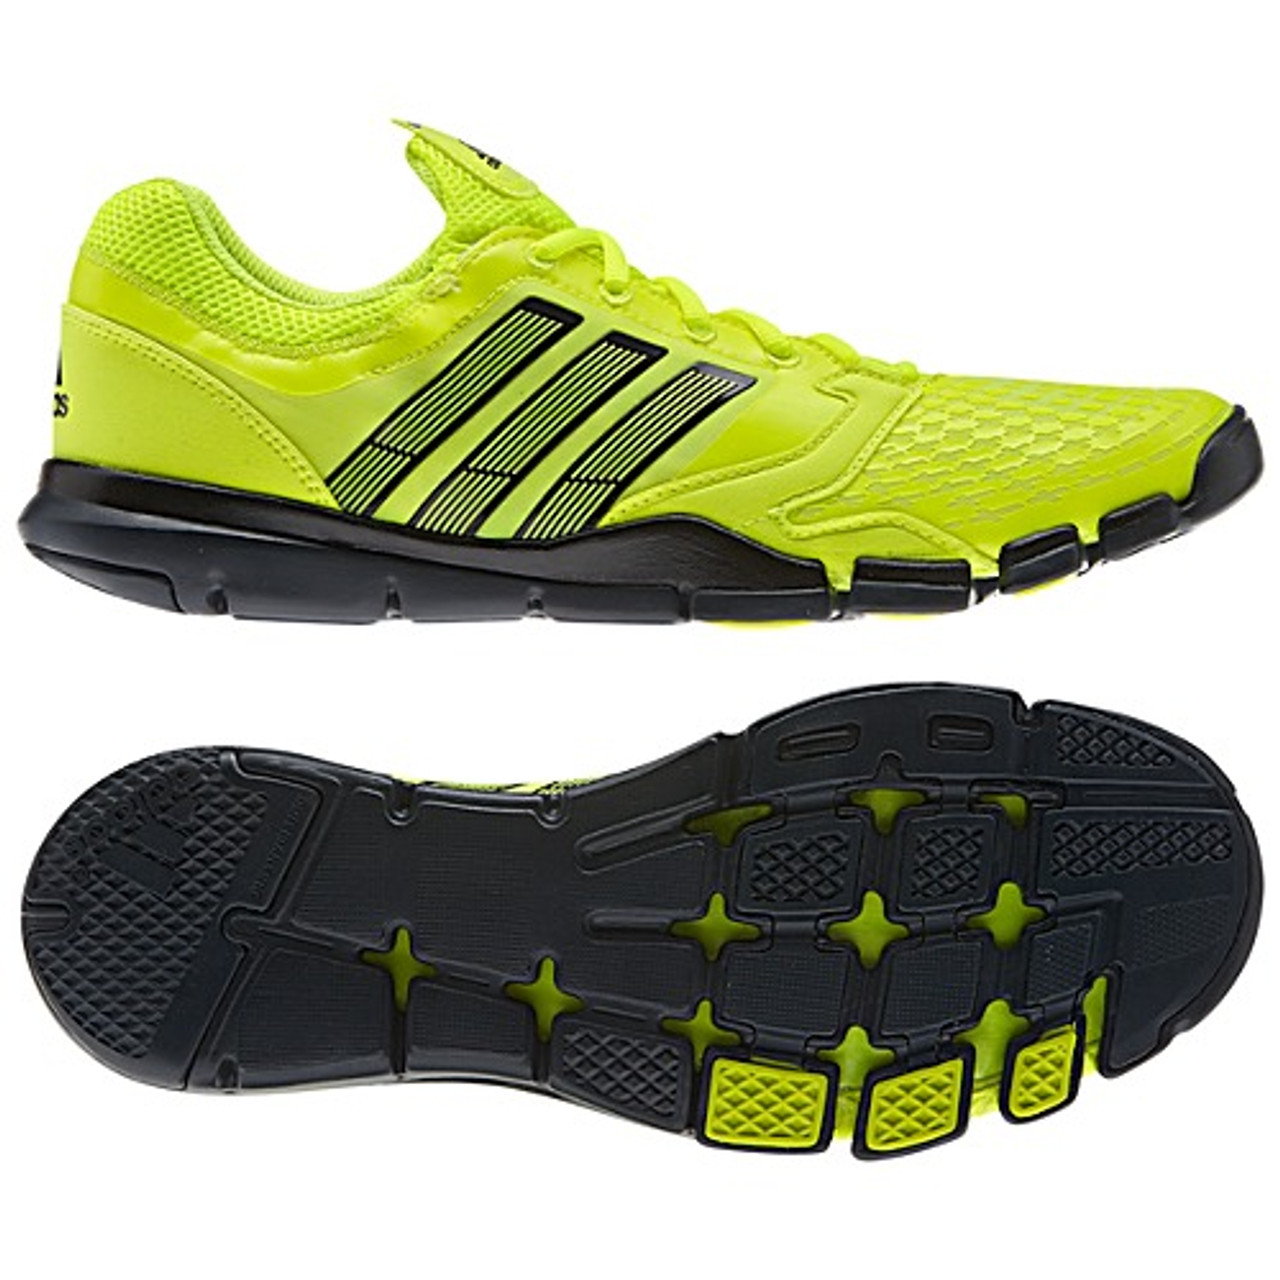 Adidas adipure Trainer 360 Electricity/Black/White Mens Cross Trainers